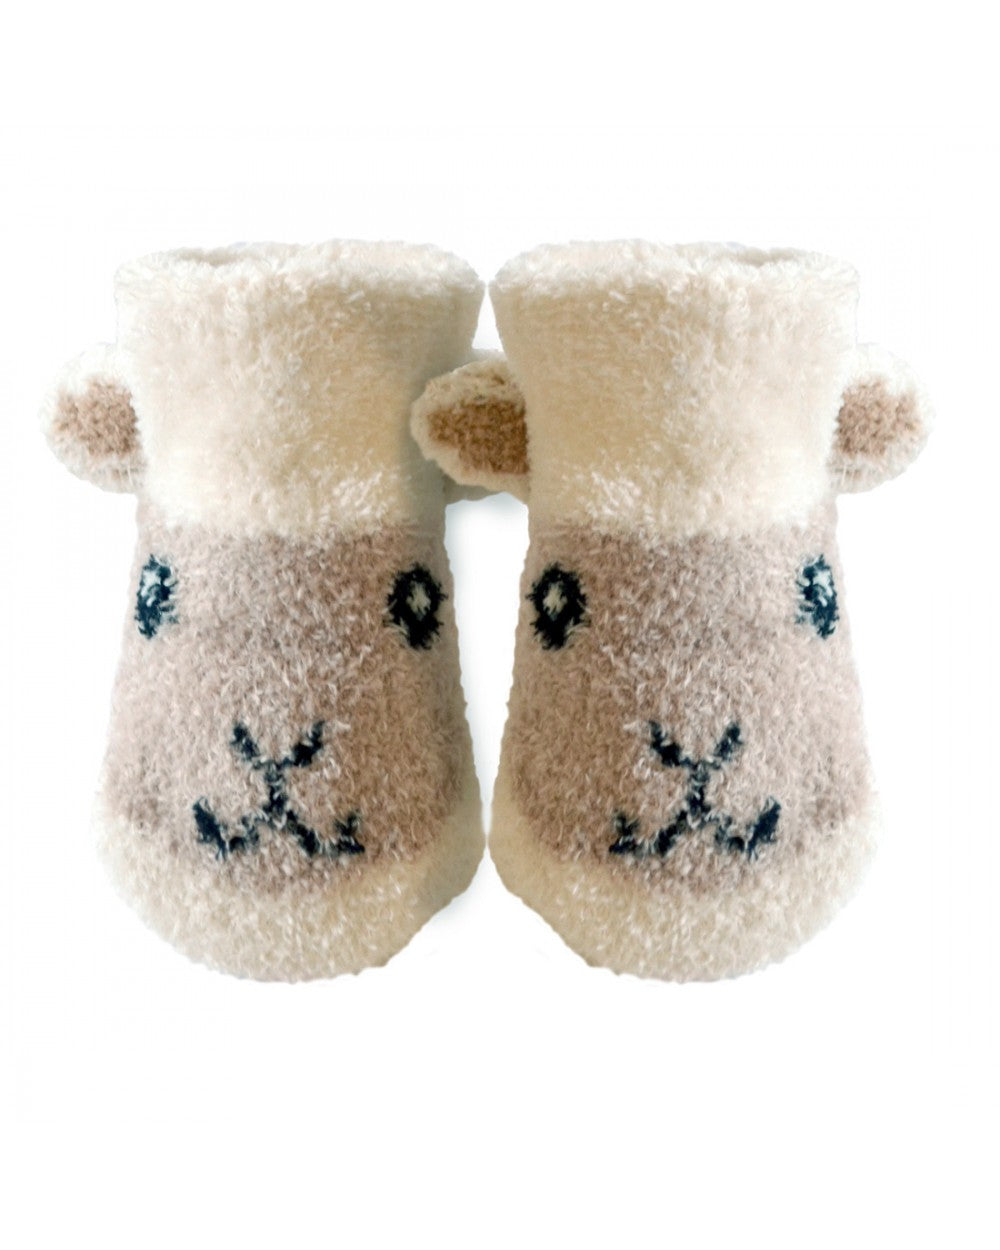 Patrick Francis Ireland Cream Baby Sheep Booties